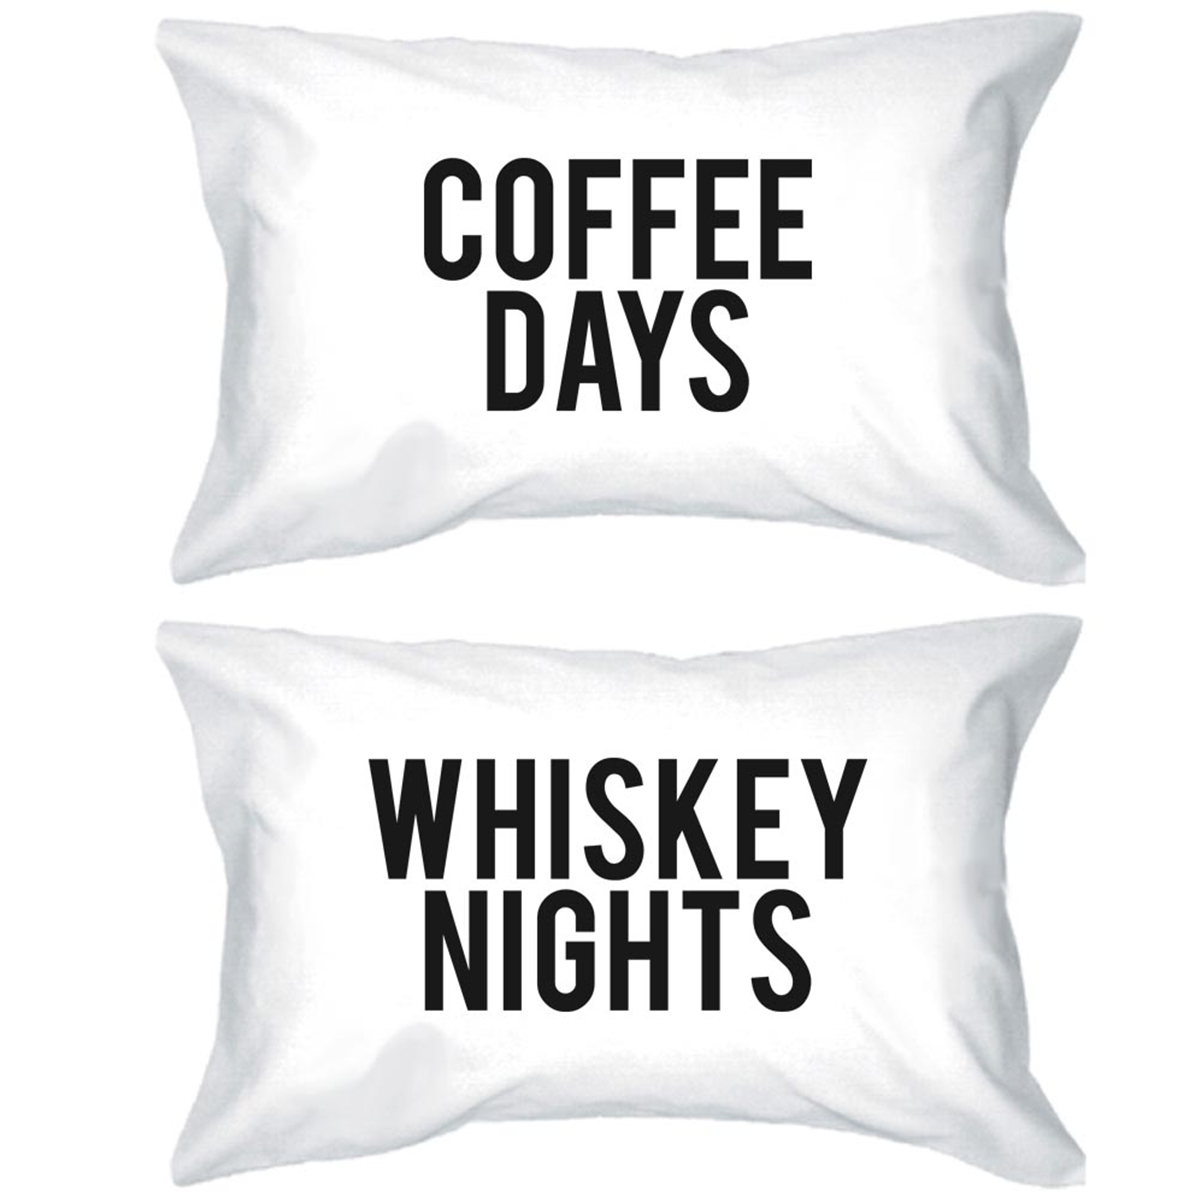 Coffee Days   Whiskey Nights Pillowcases